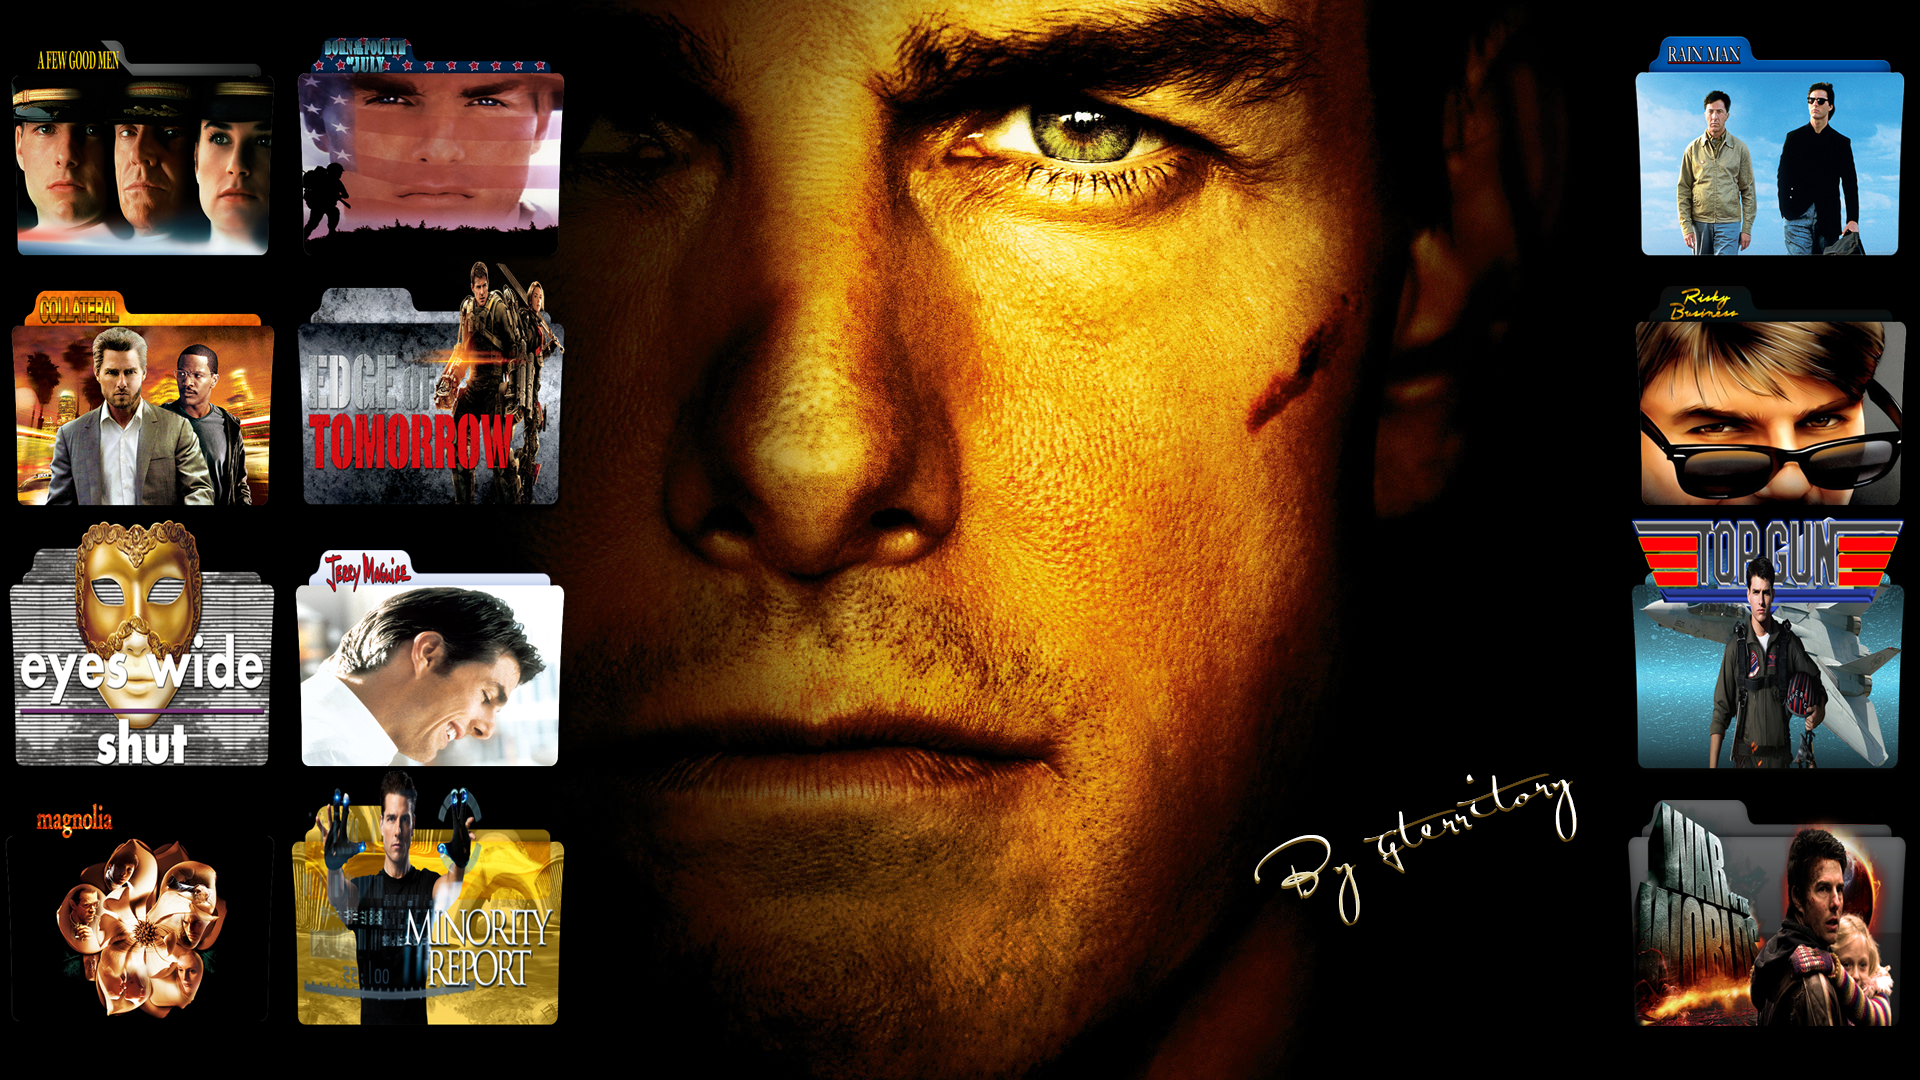 Tom Cruise Movies Icon Pack by gterritory on DeviantArt